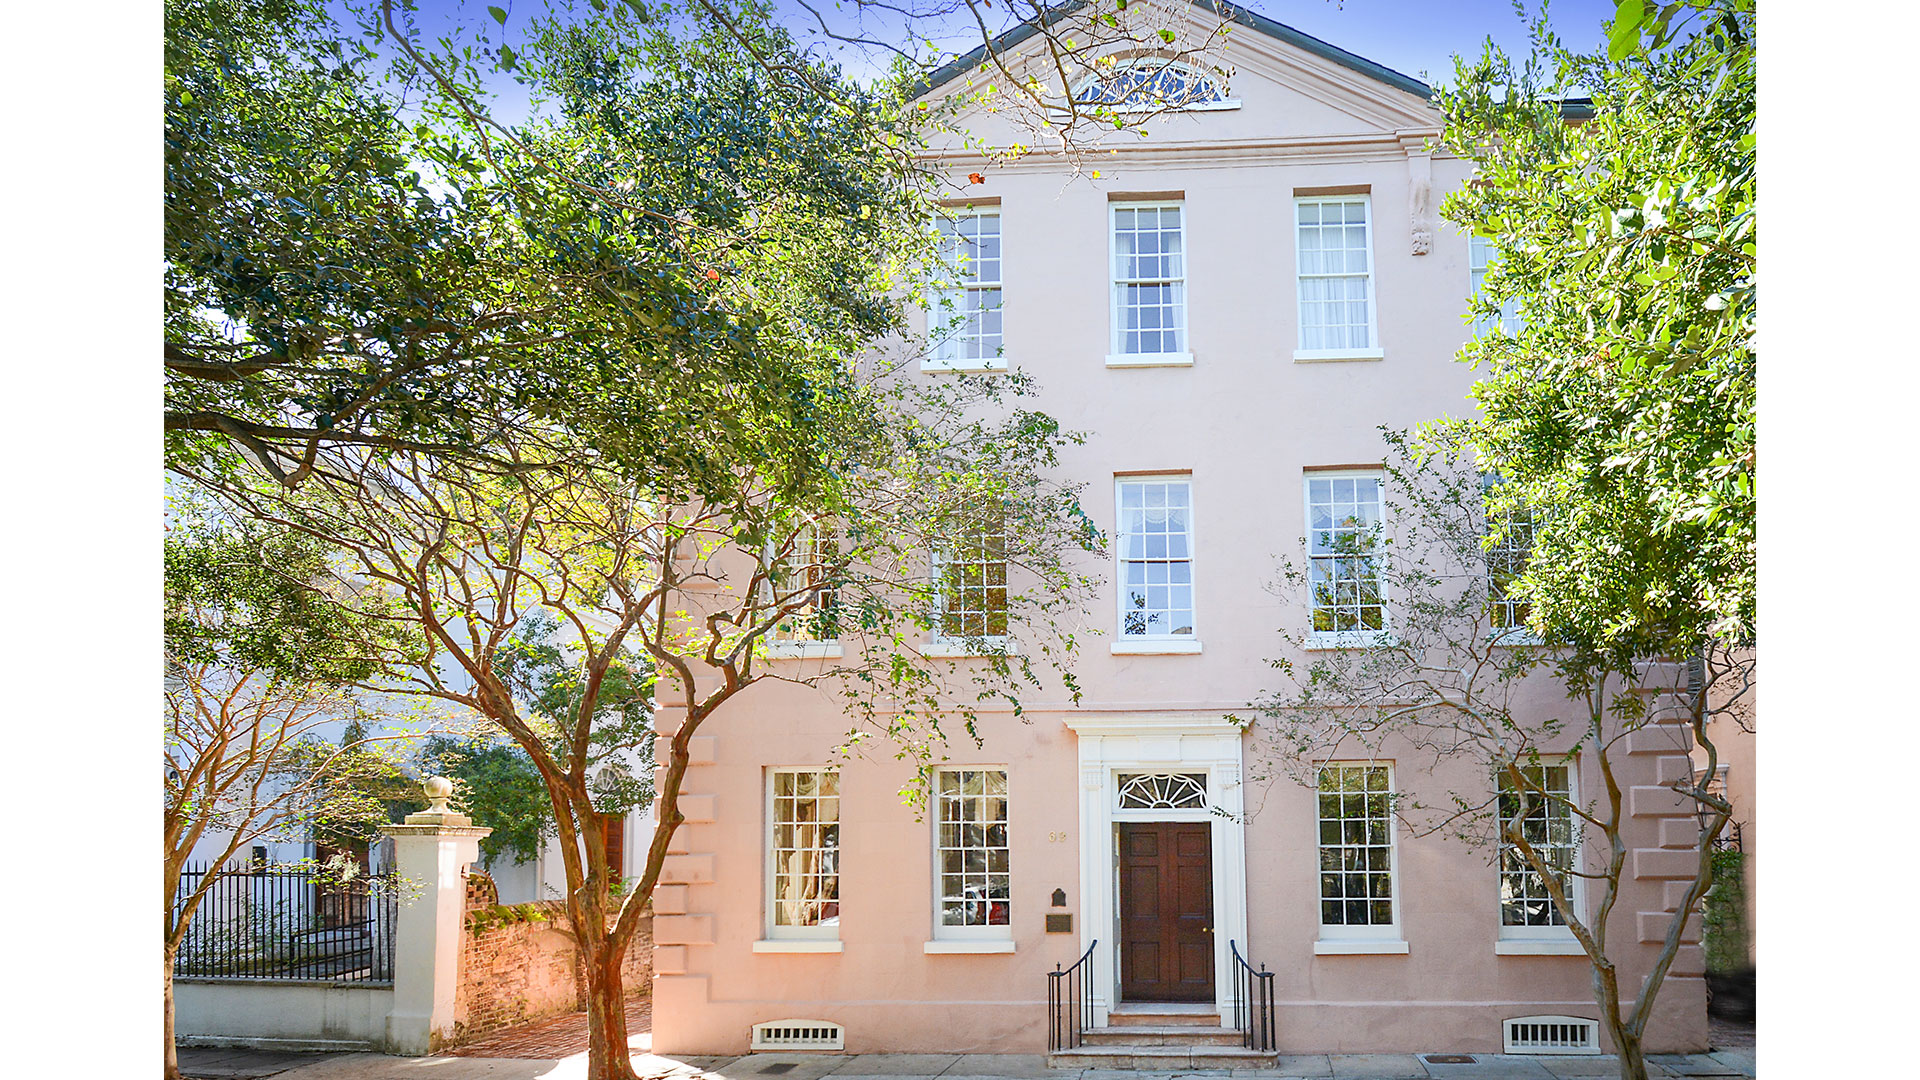 This Stunning, 275-Year-Old Charleston Home Just Hit the Market for the First Time